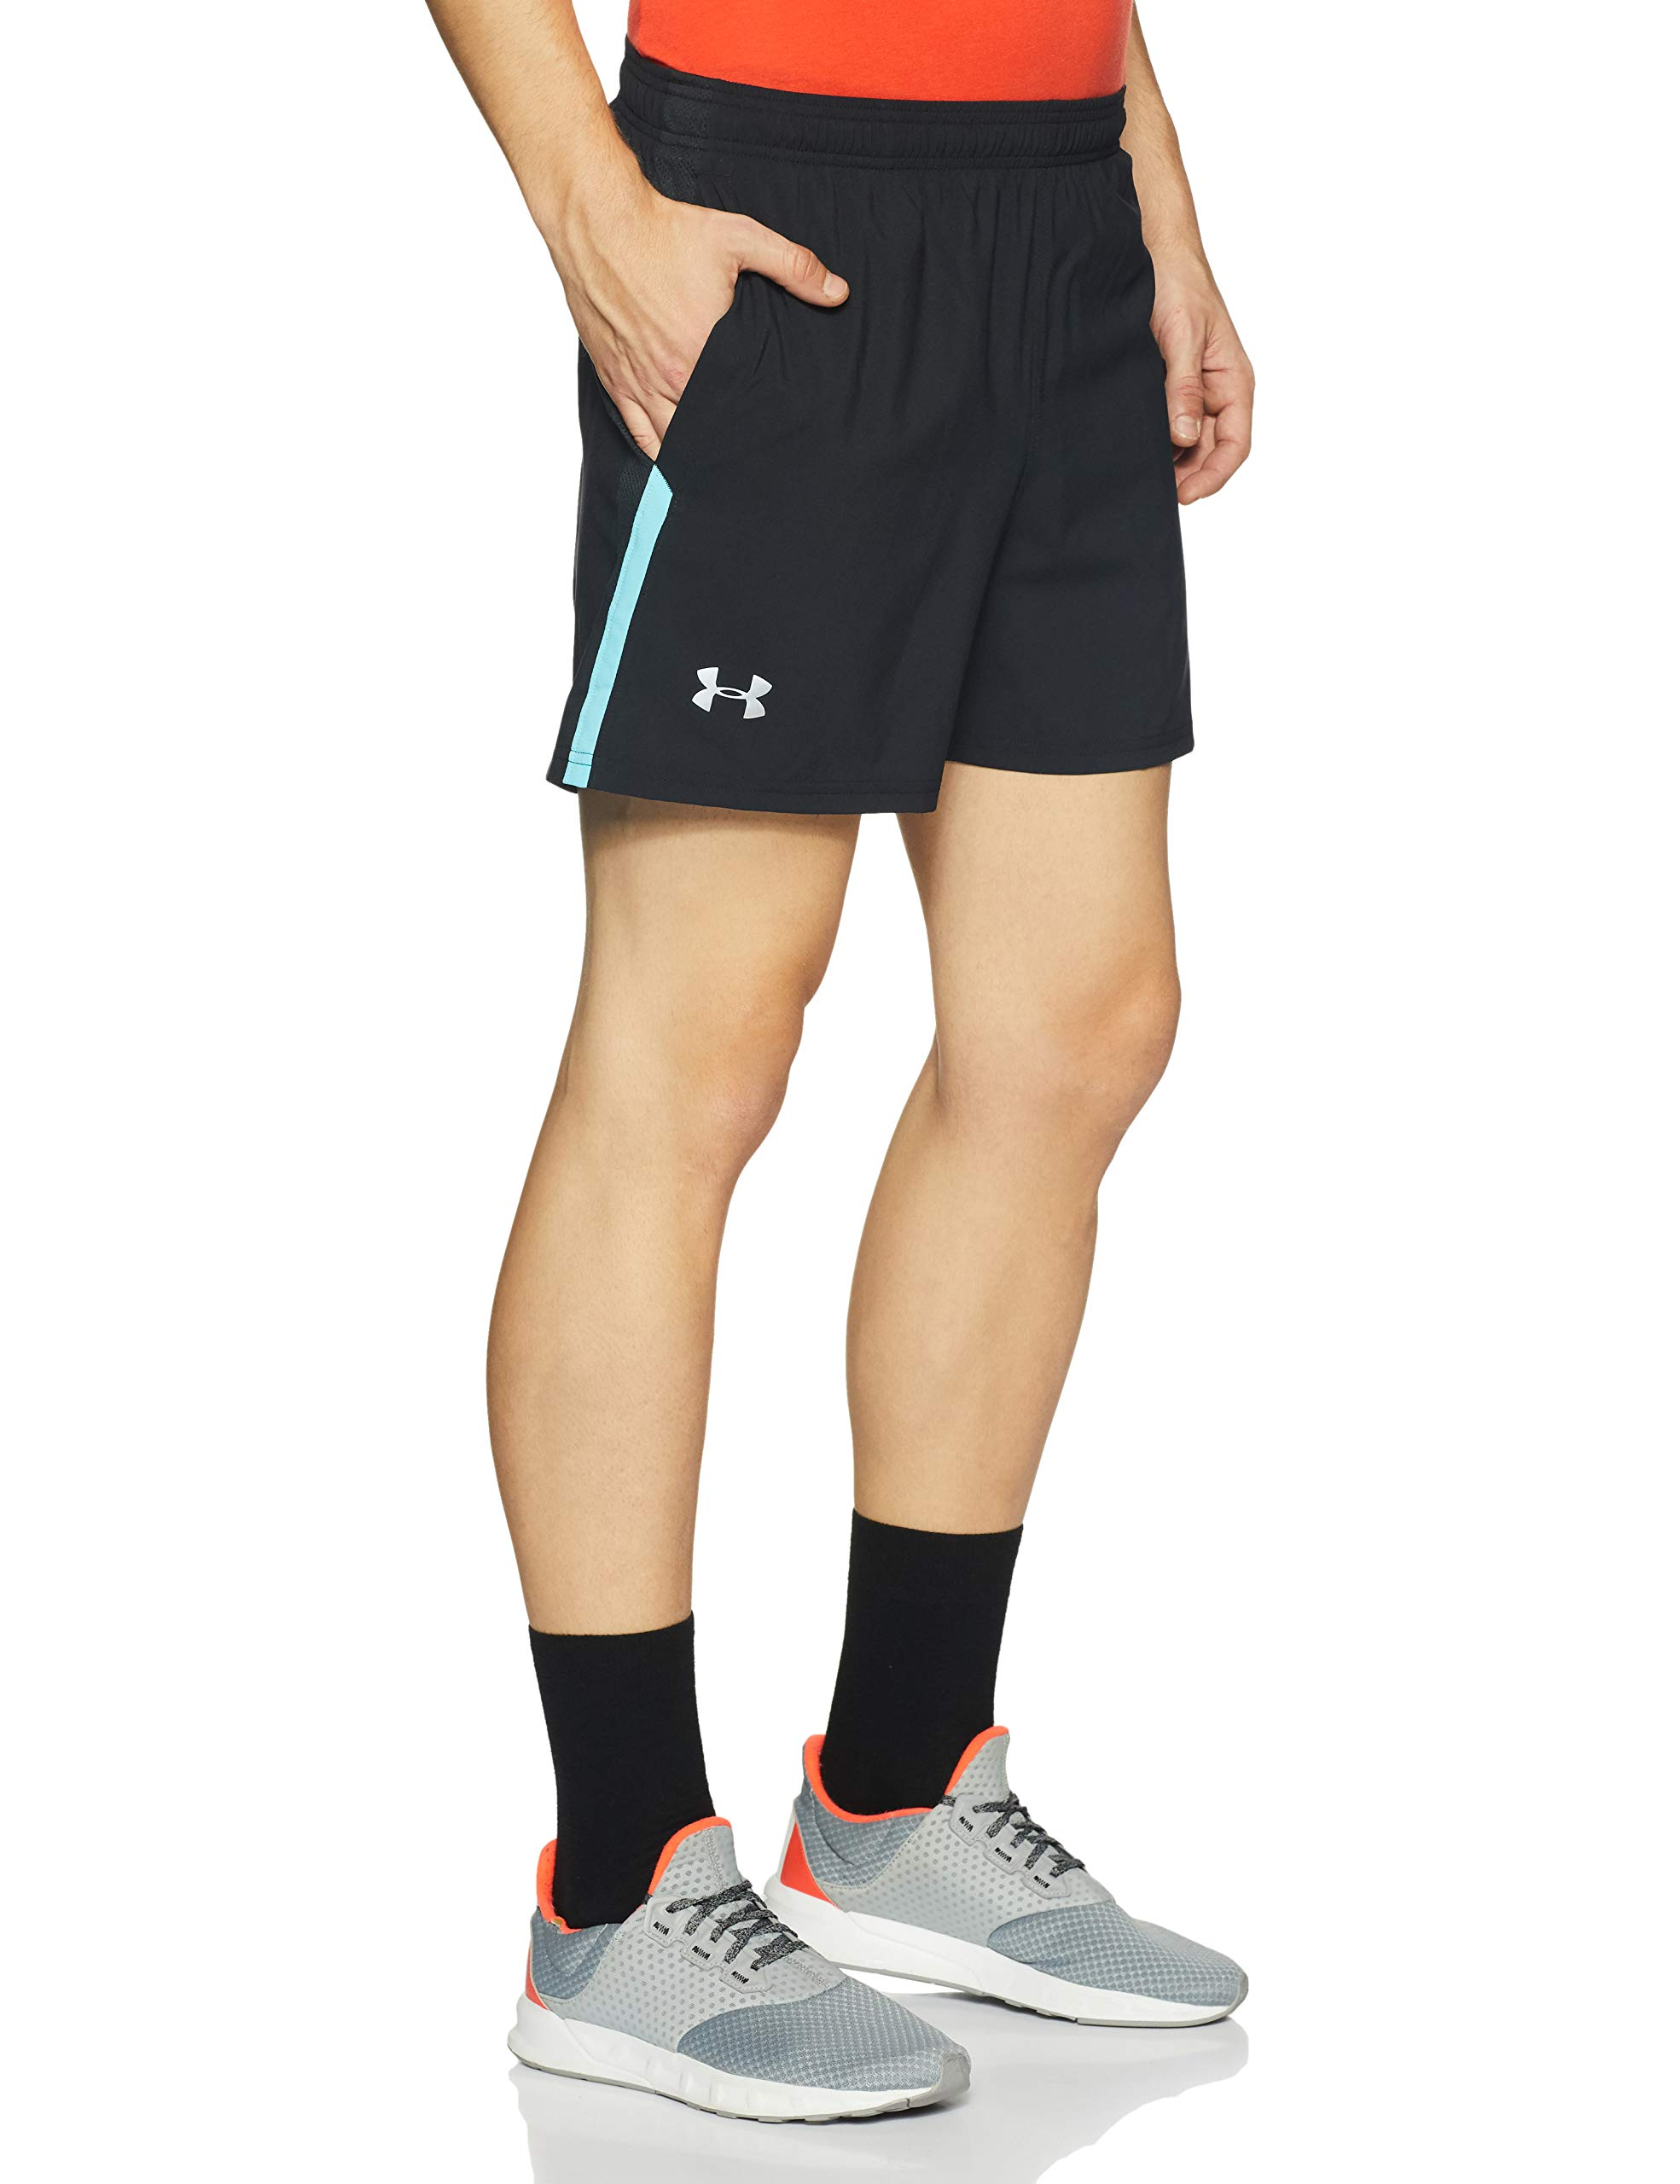 Under Armour Men's Launch SW 5'' Short, Black/Venetian Blue, X-Small by Under Armour (Image #3)